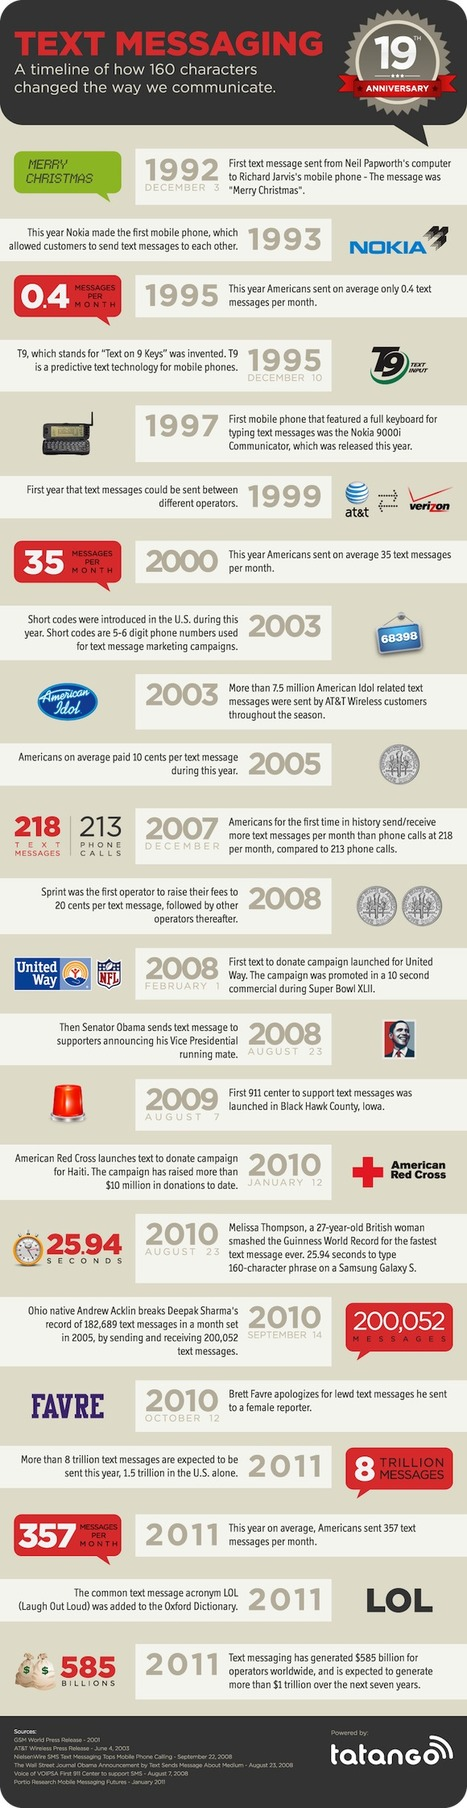 THe History of Text Messaging [Infographic] | GOSSIP, NEWS & SPORT! | Scoop.it